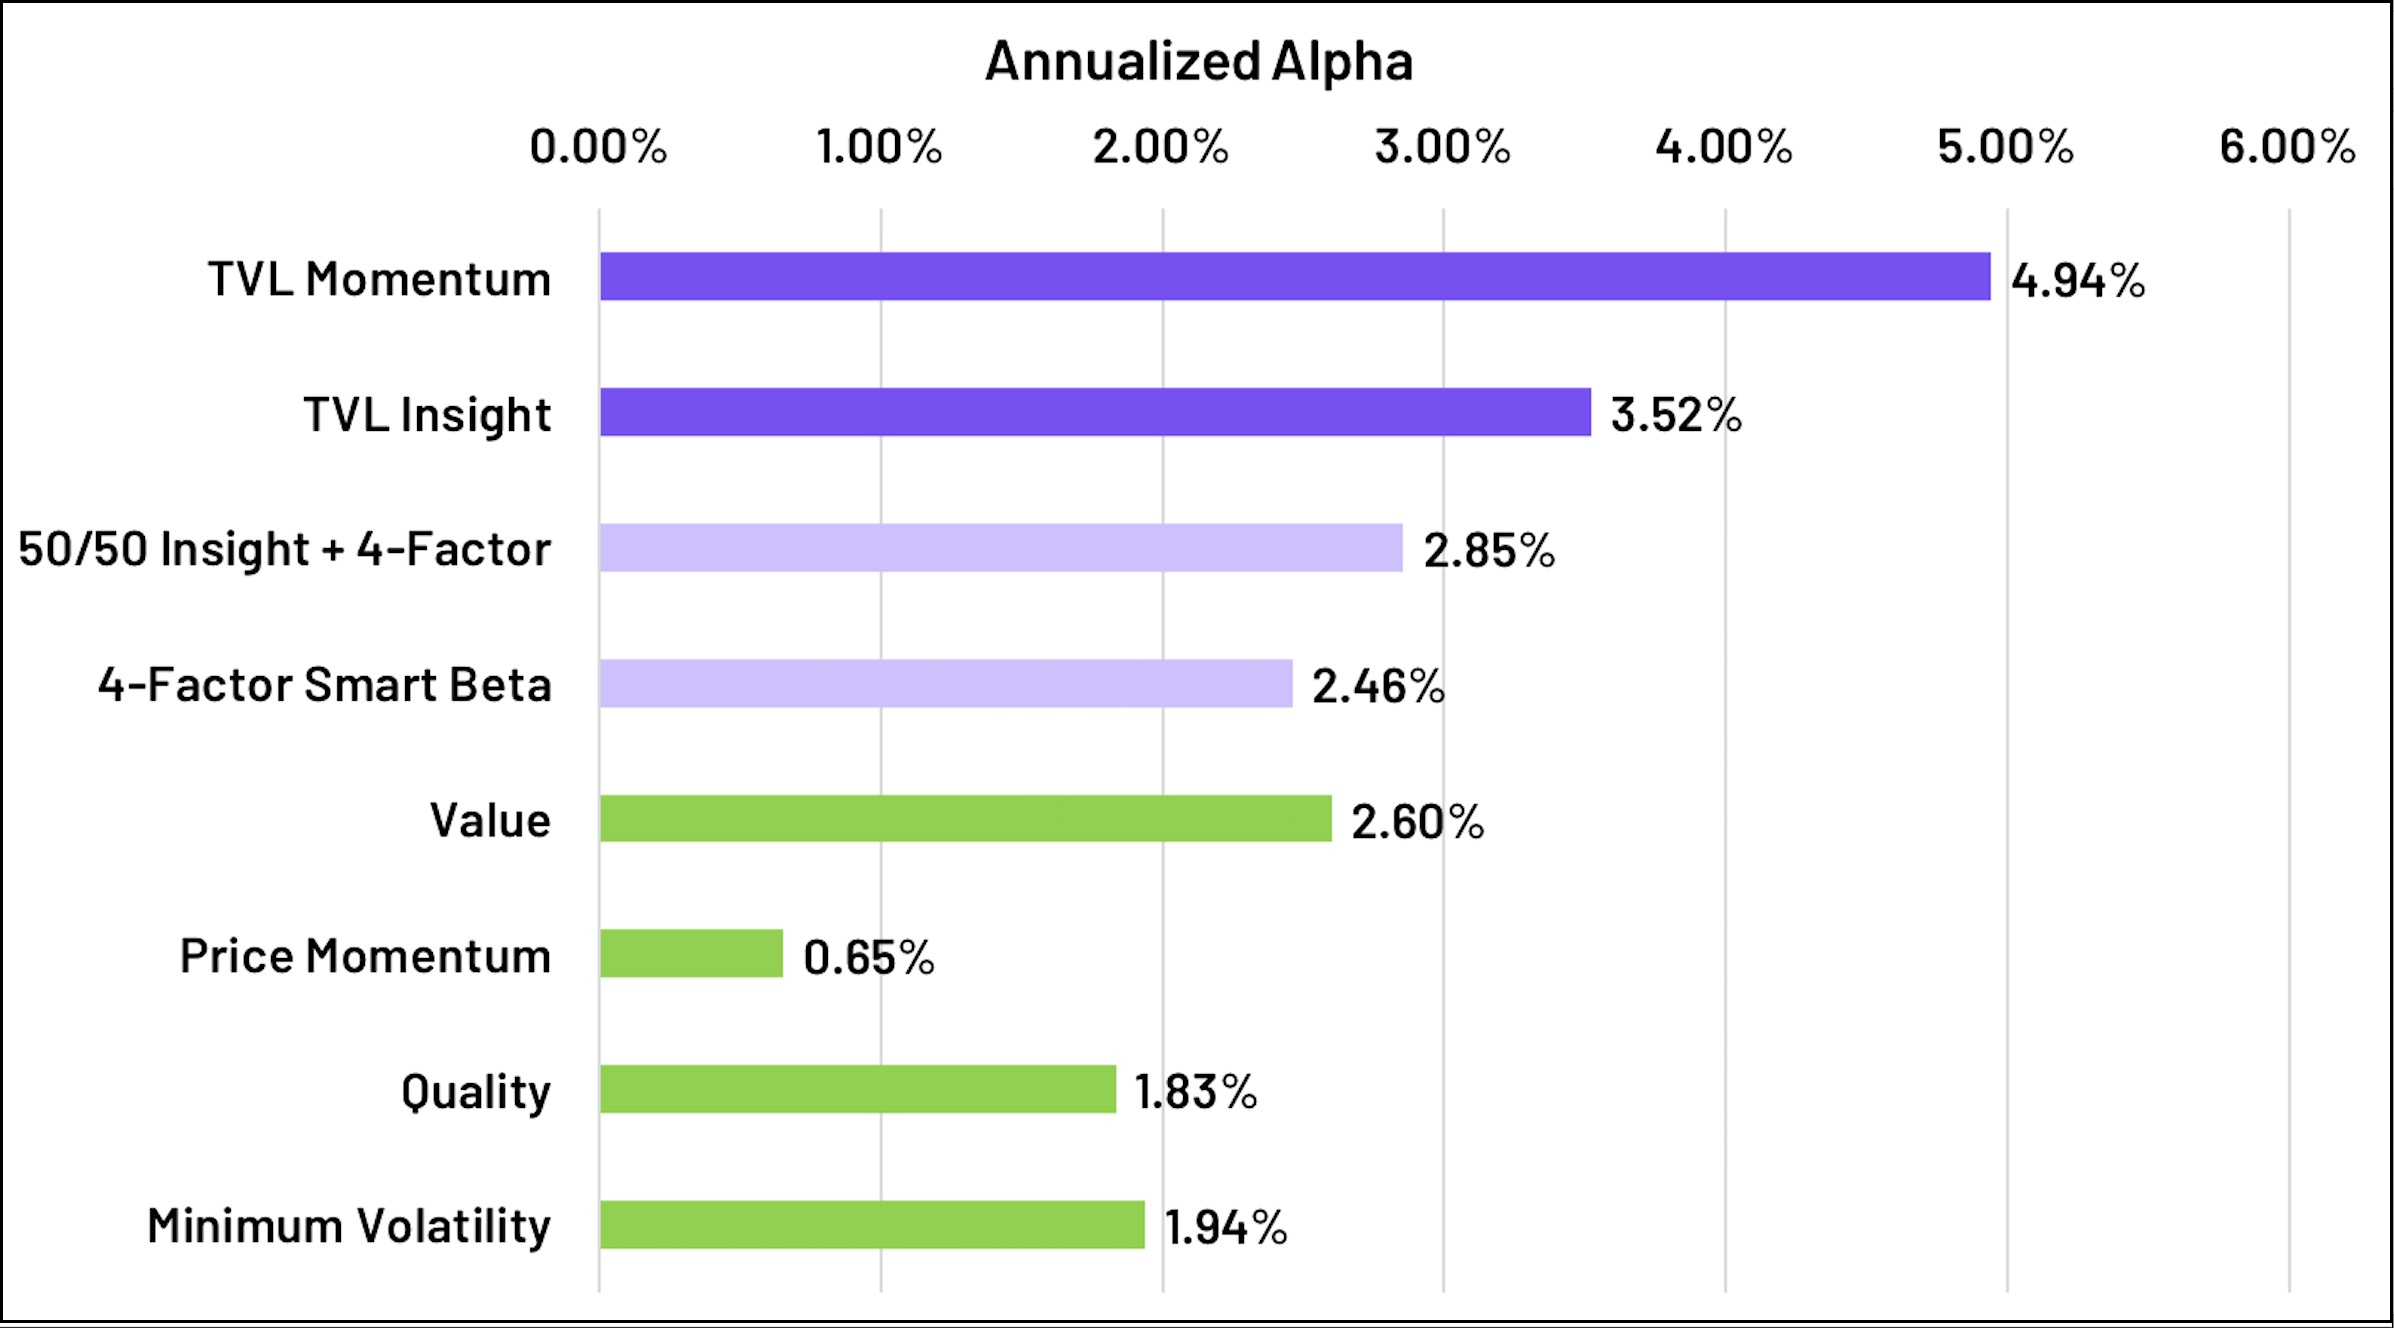 Annualized Alpha